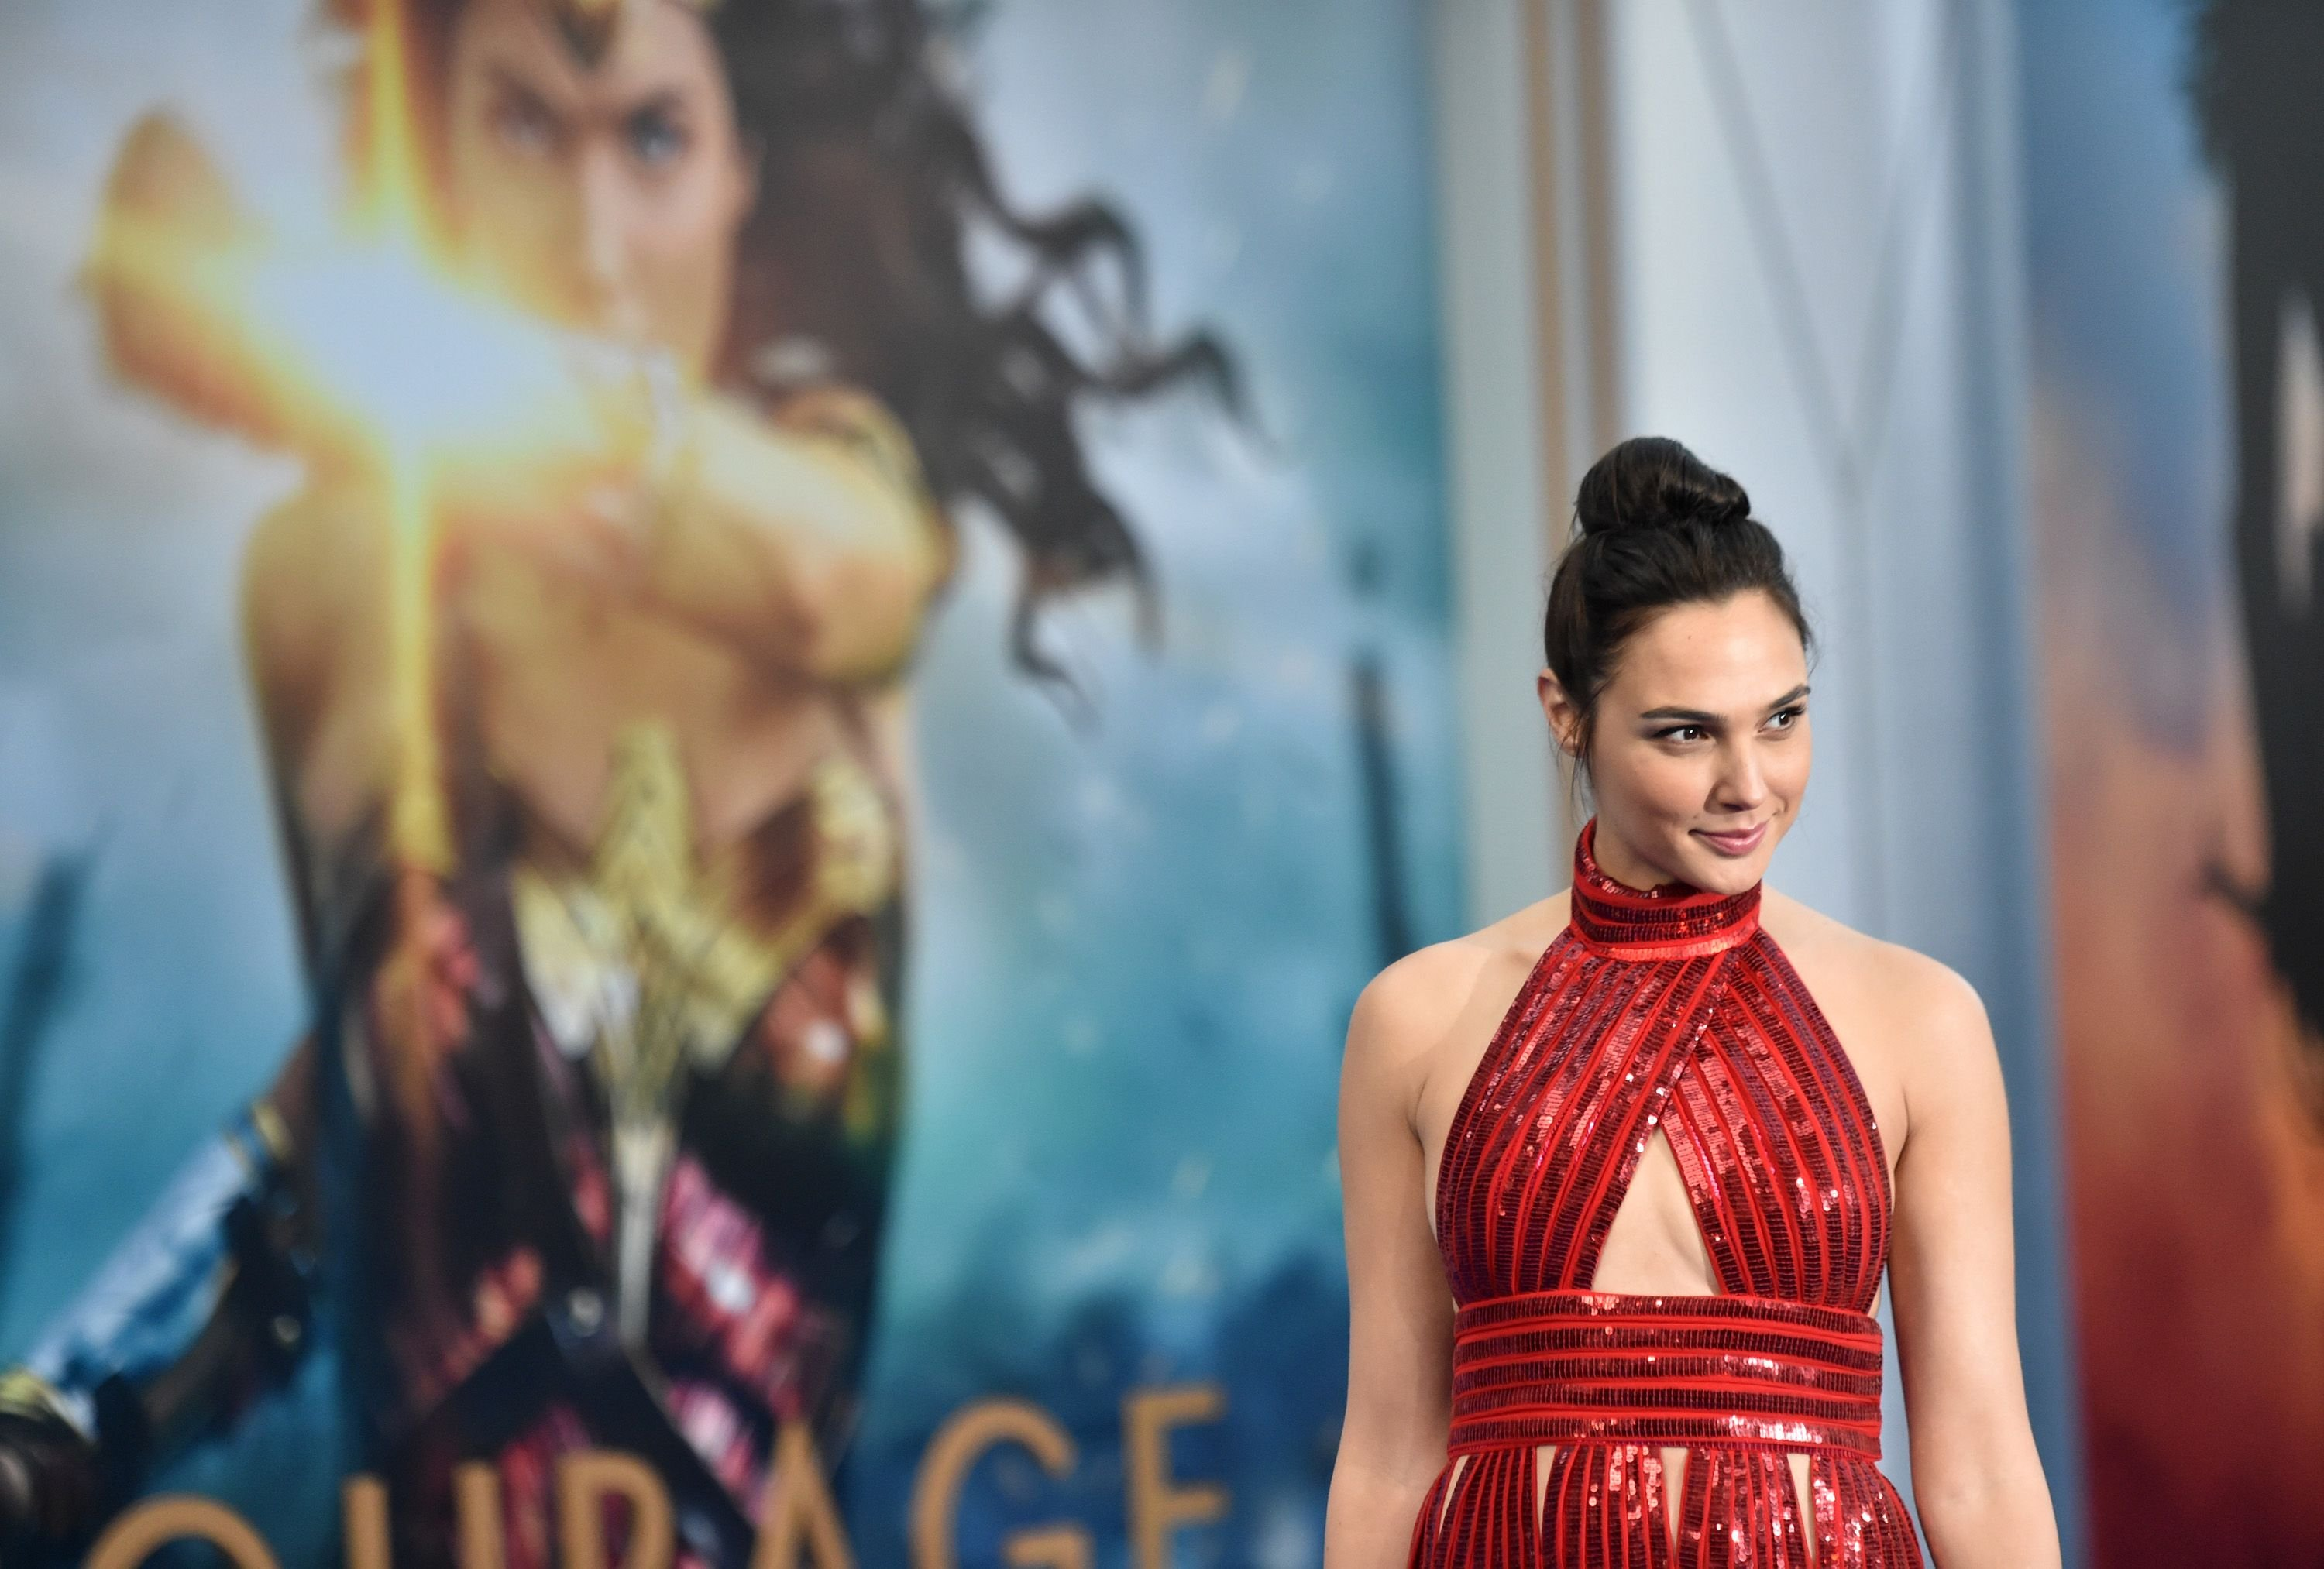 """Gal Gadot at the premiere of """"Wonder Woman"""" in 2017 in Hollywood, California   Source: Getty Images"""